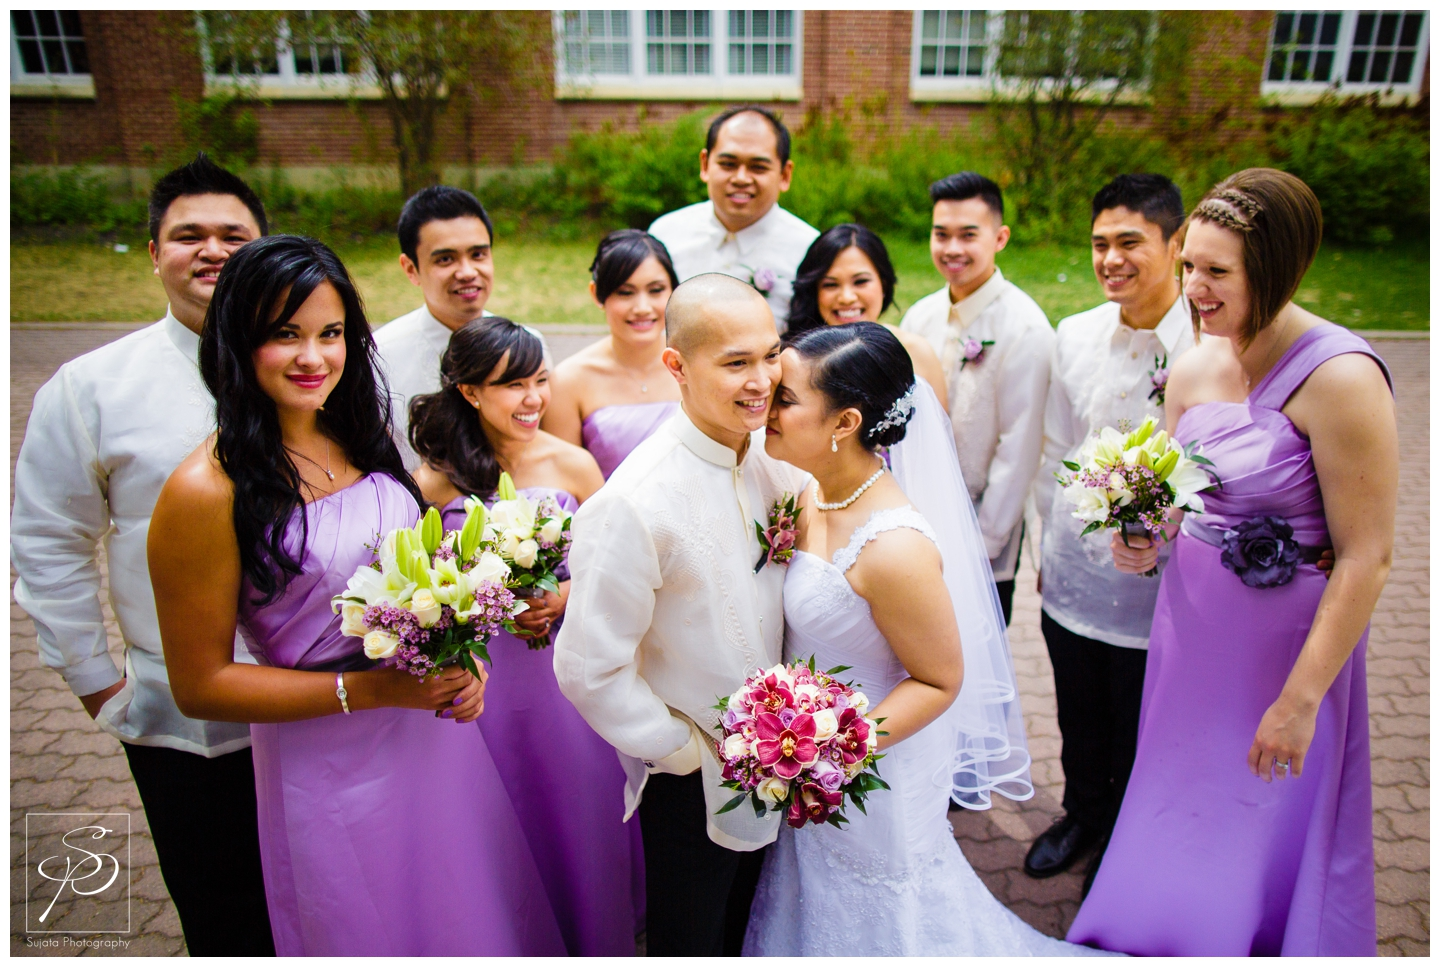 Calgary_Catholic_Philippino_Wedding_photographer_photo_0041.jpg